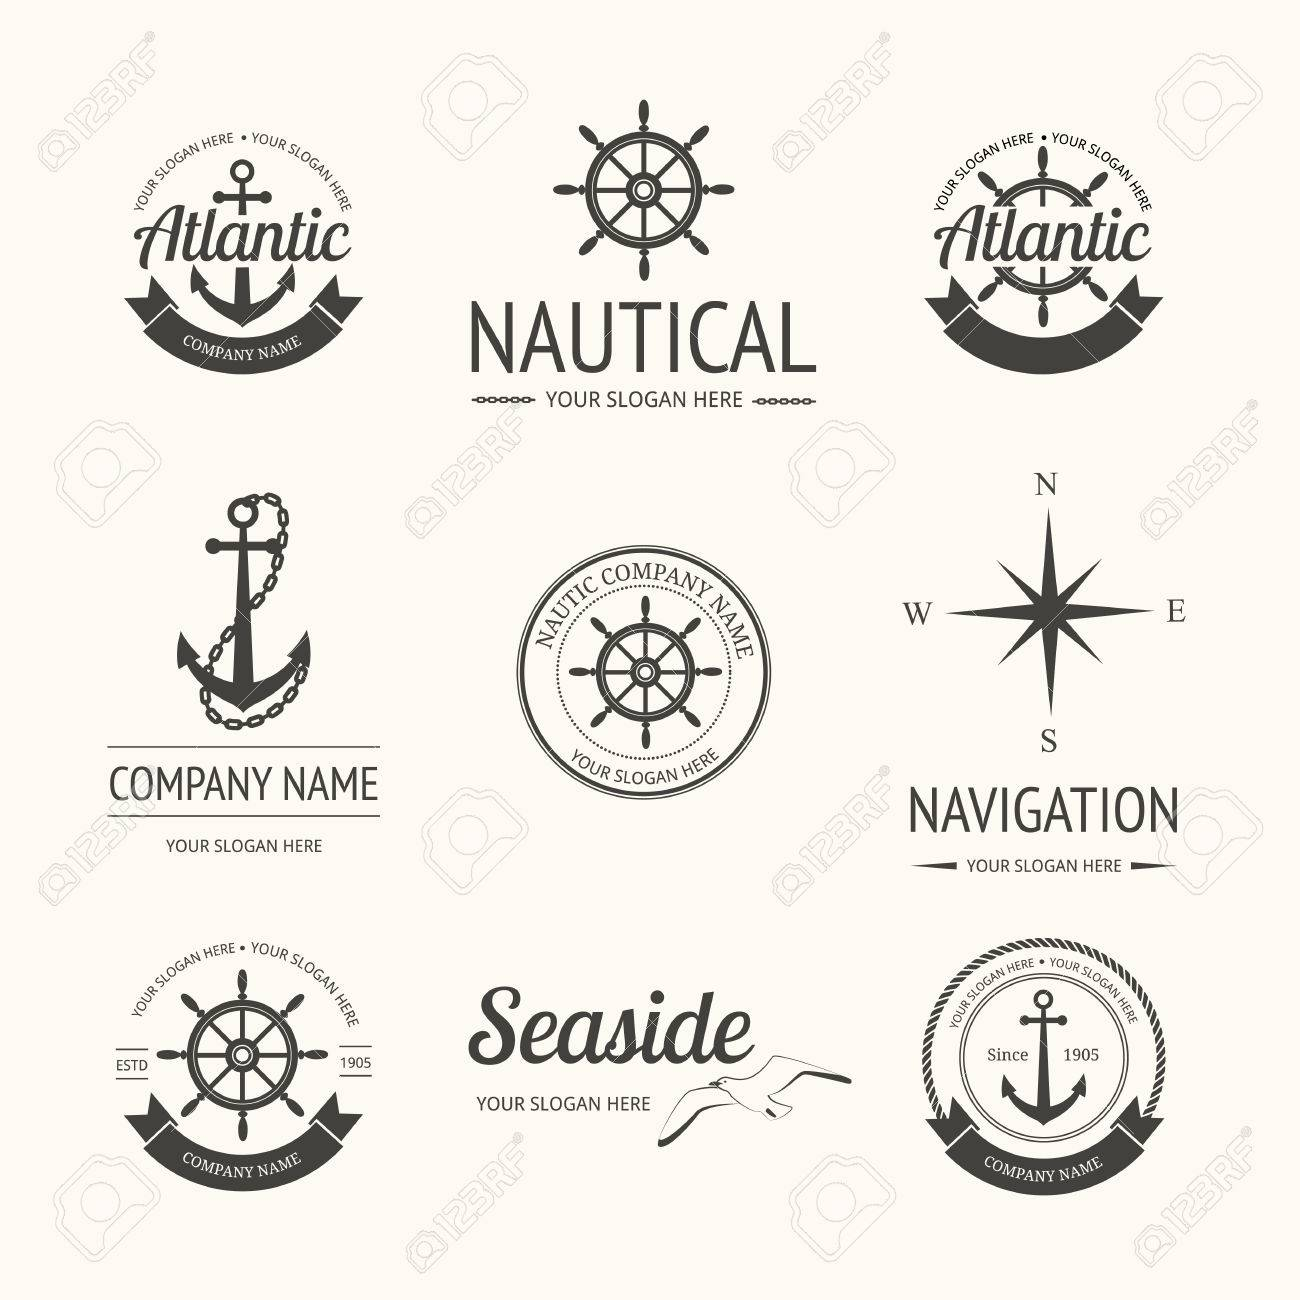 Set Of Retro Nautical Labels, Badges And Templates Royalty Free ...